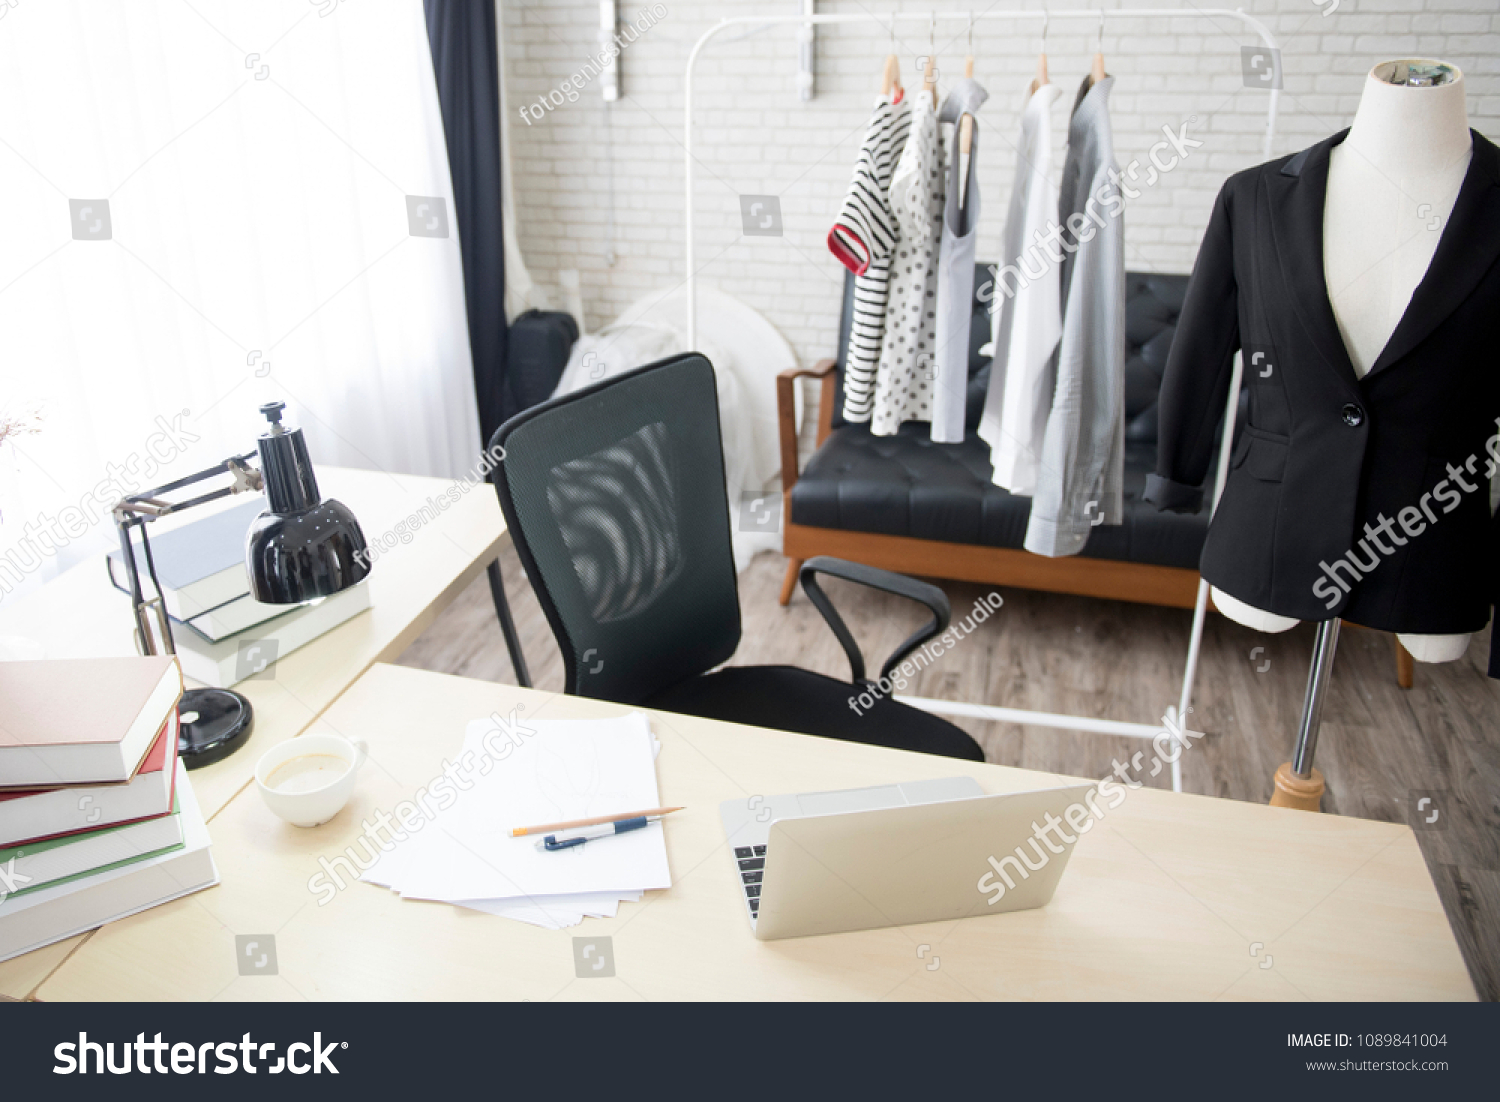 Interior Fashion Designer Working Office Space Beauty Fashion Stock Image 1089841004